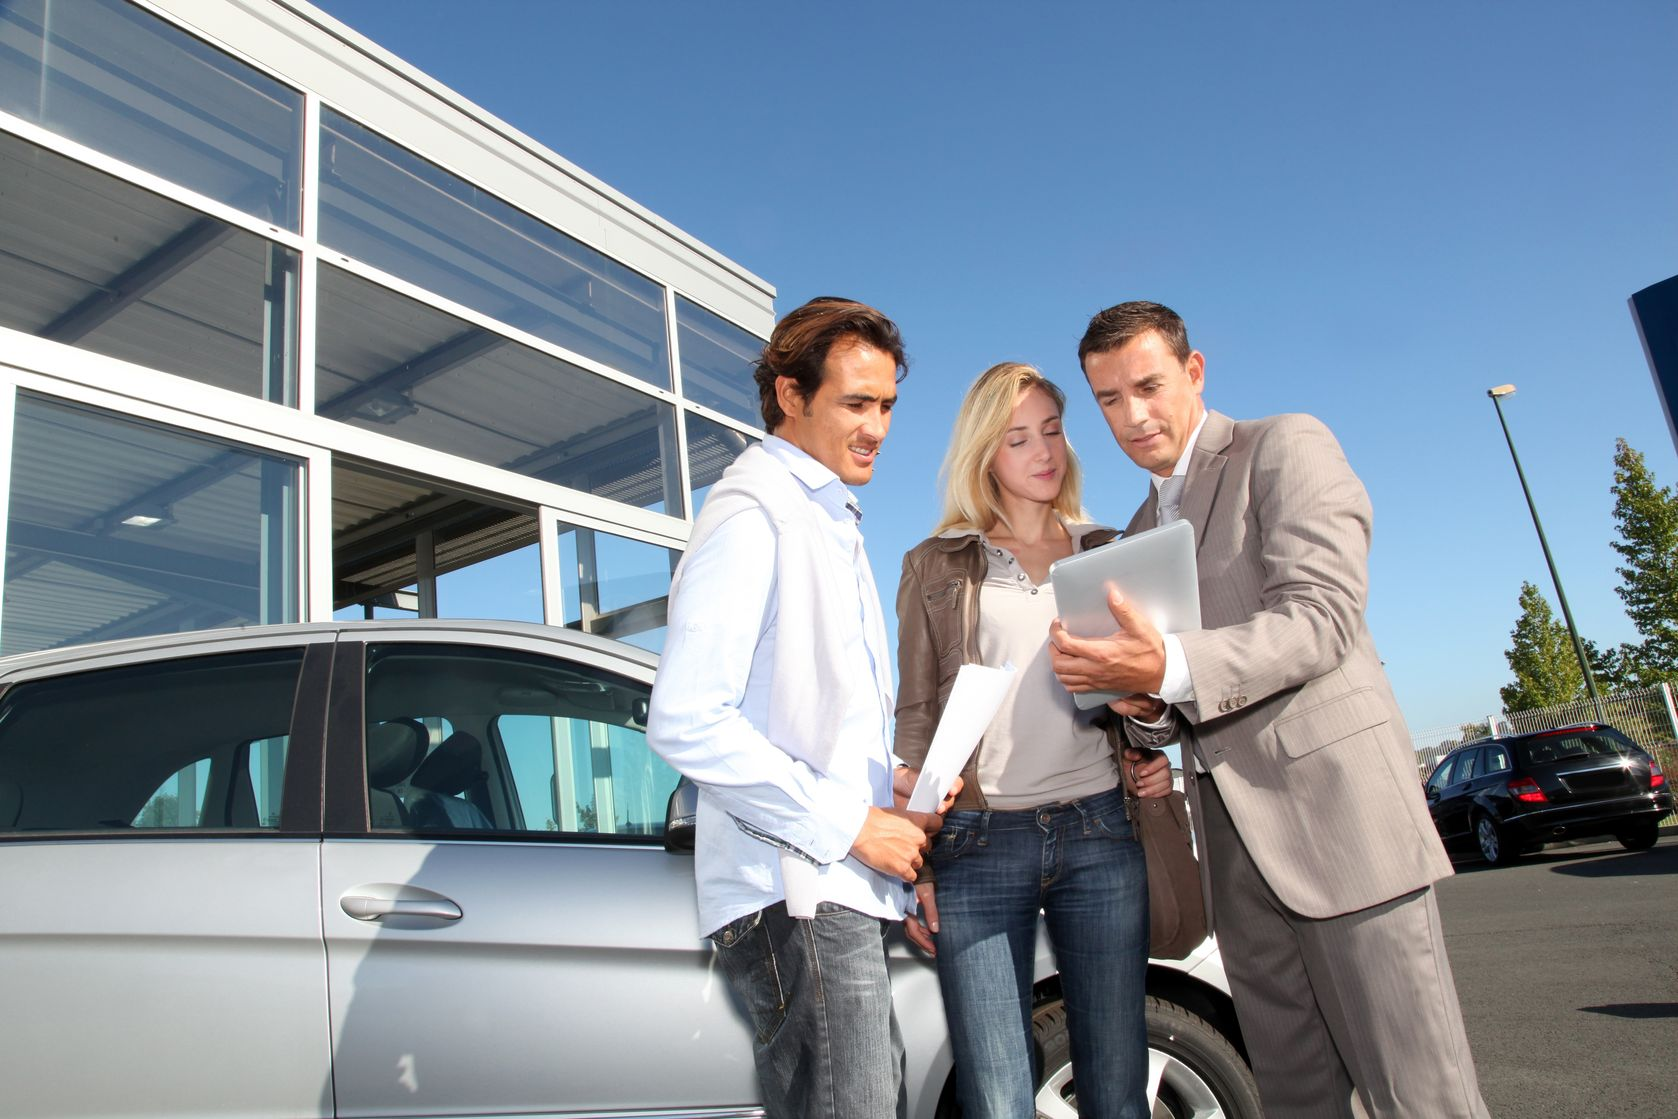 Bartow Auto Dealers Insurance